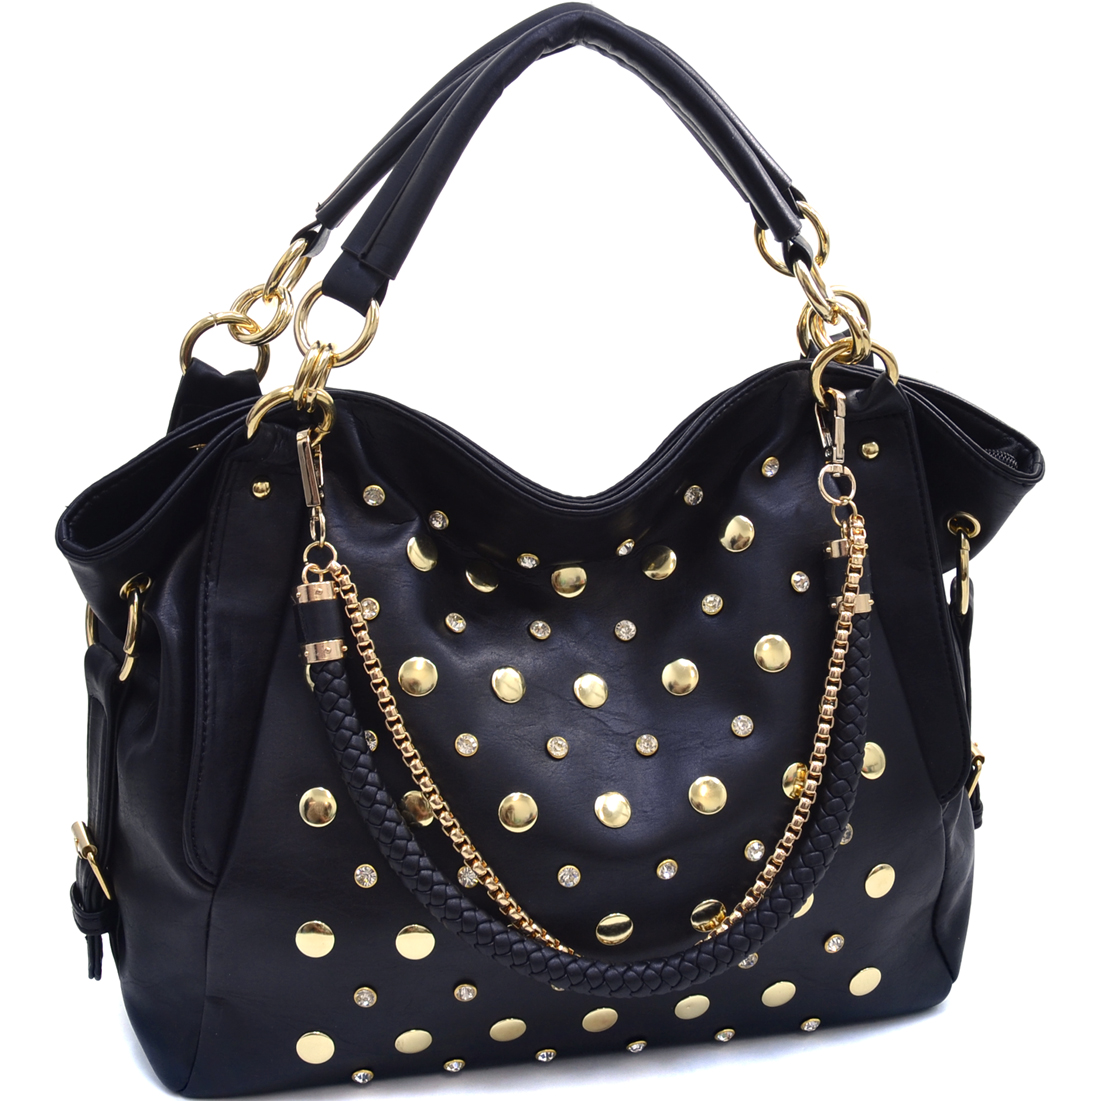 Rhinestone Gold Studded Satchel With Interchangeable Straps